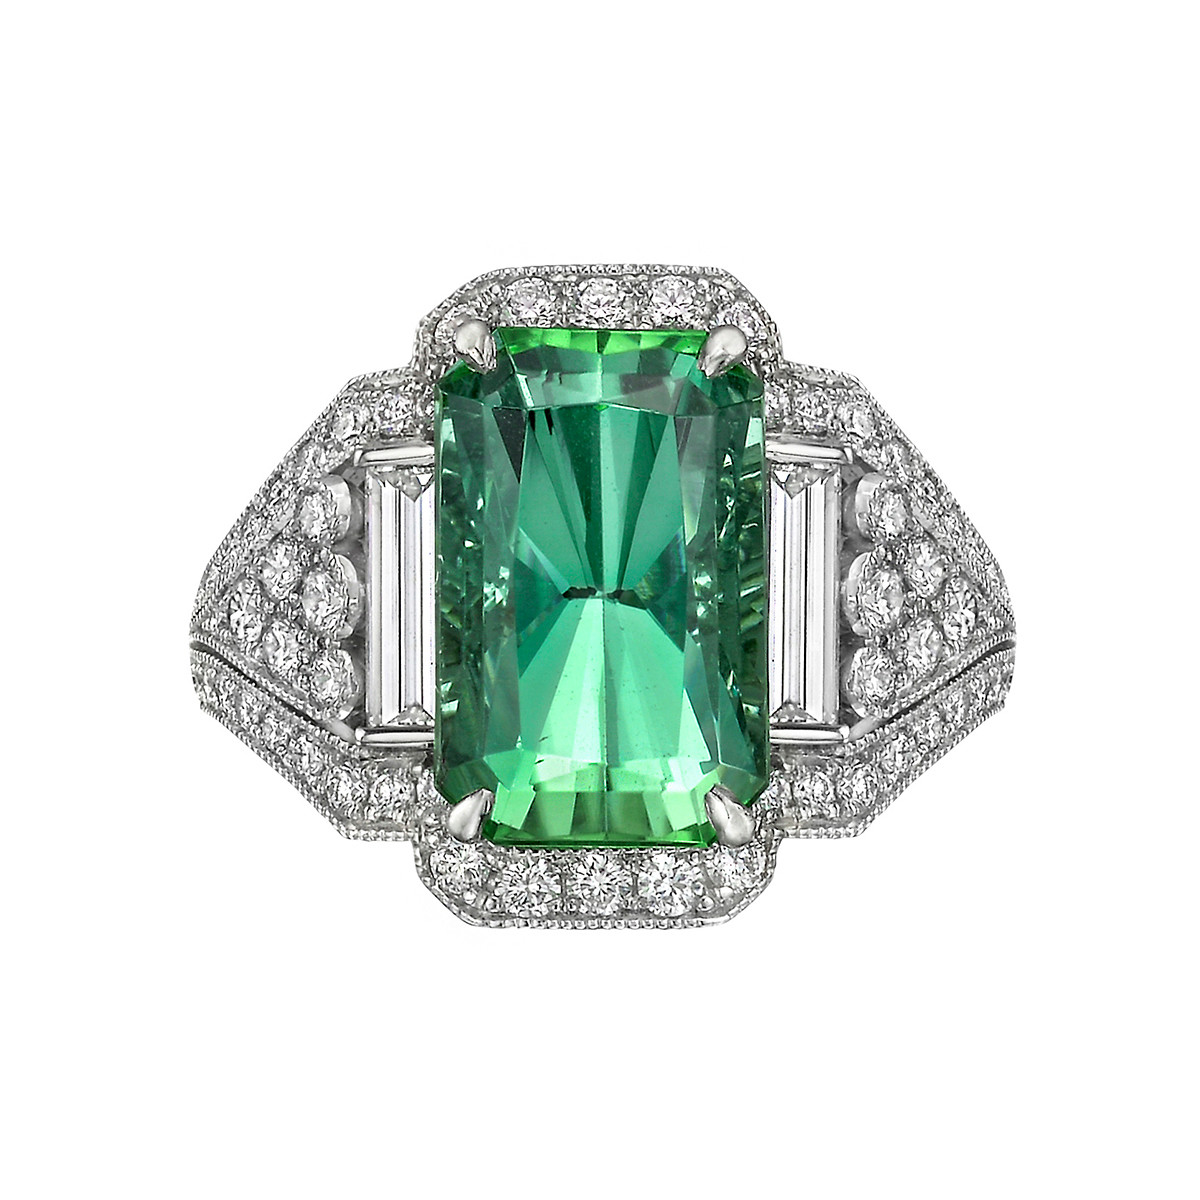 5.95 Carat Mint Tourmaline & Diamond Ring